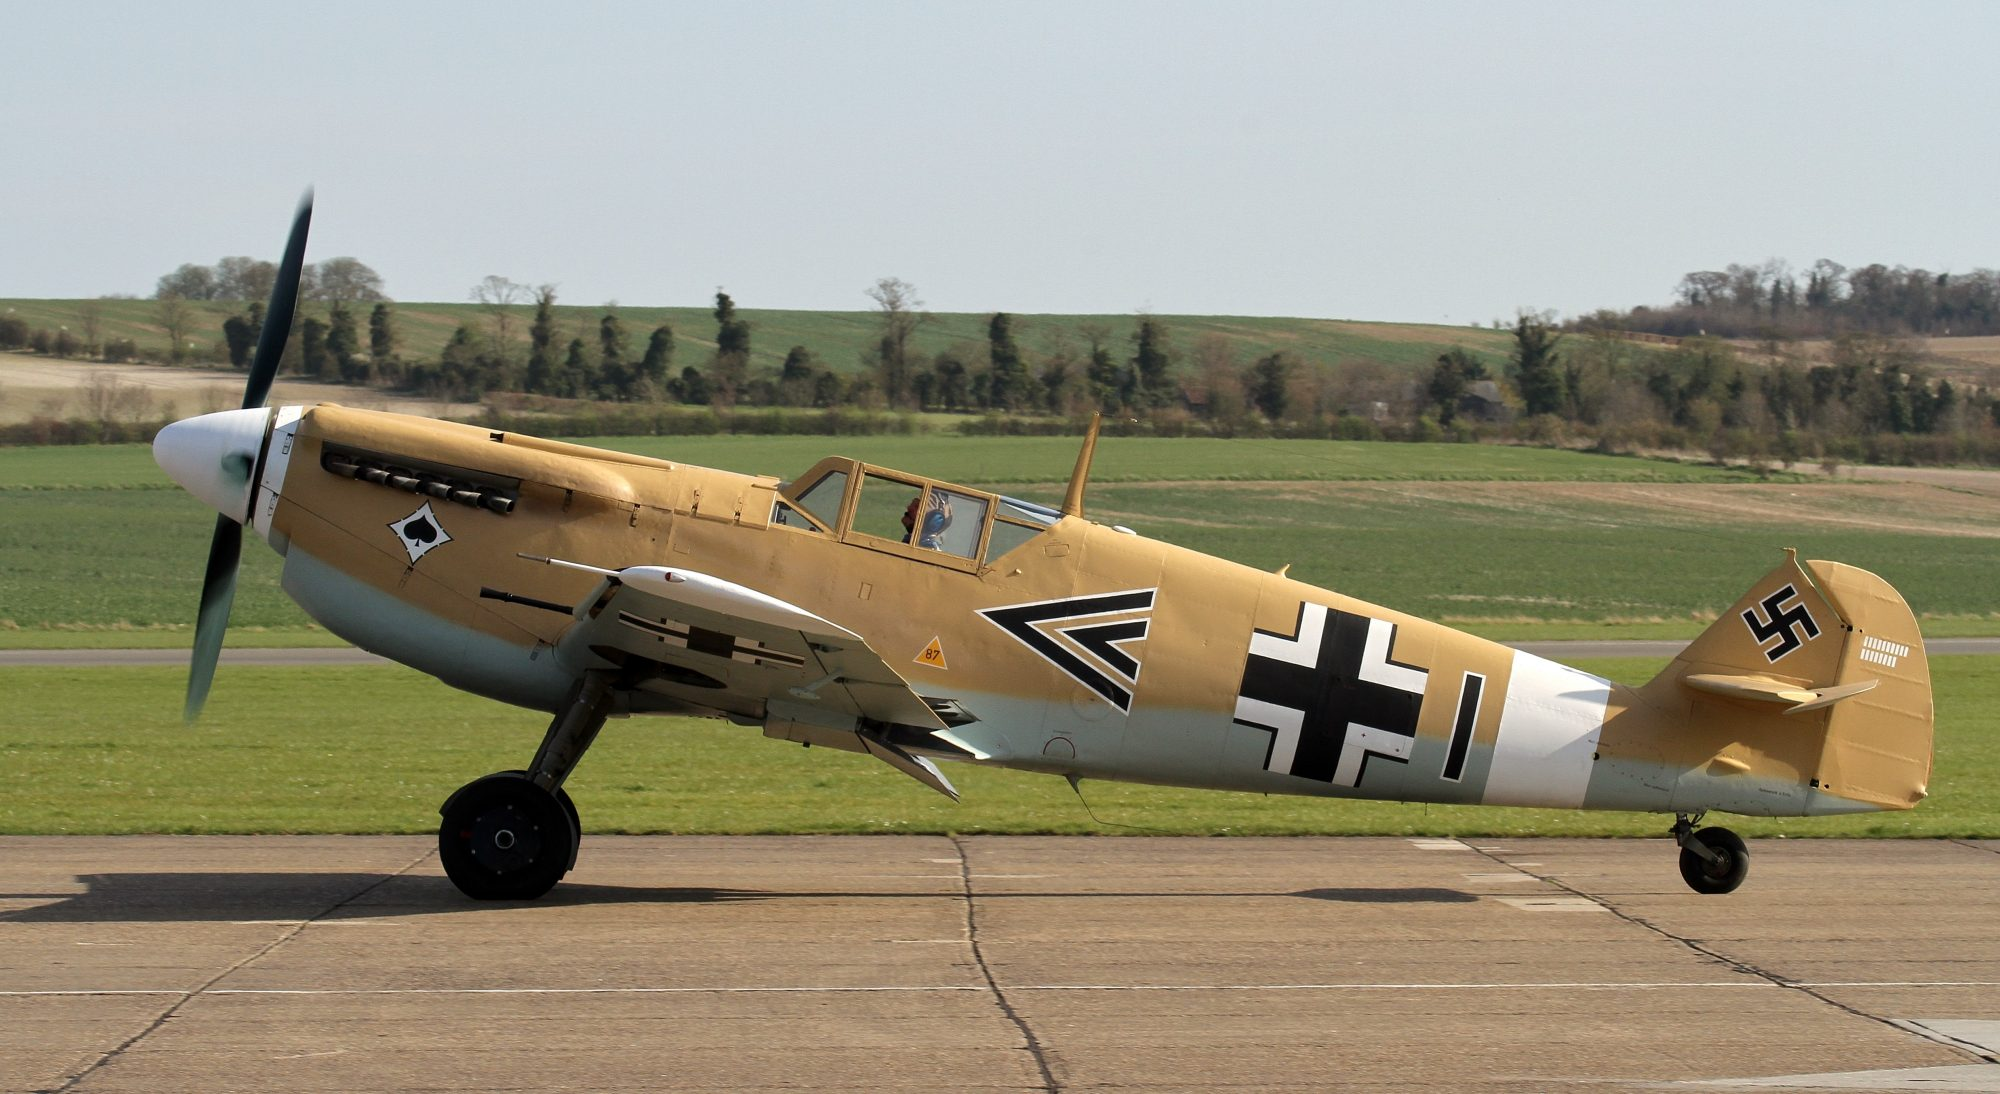 HA-1112-M1L C.4K-31 G-AWHE (Photo © David Withworth)